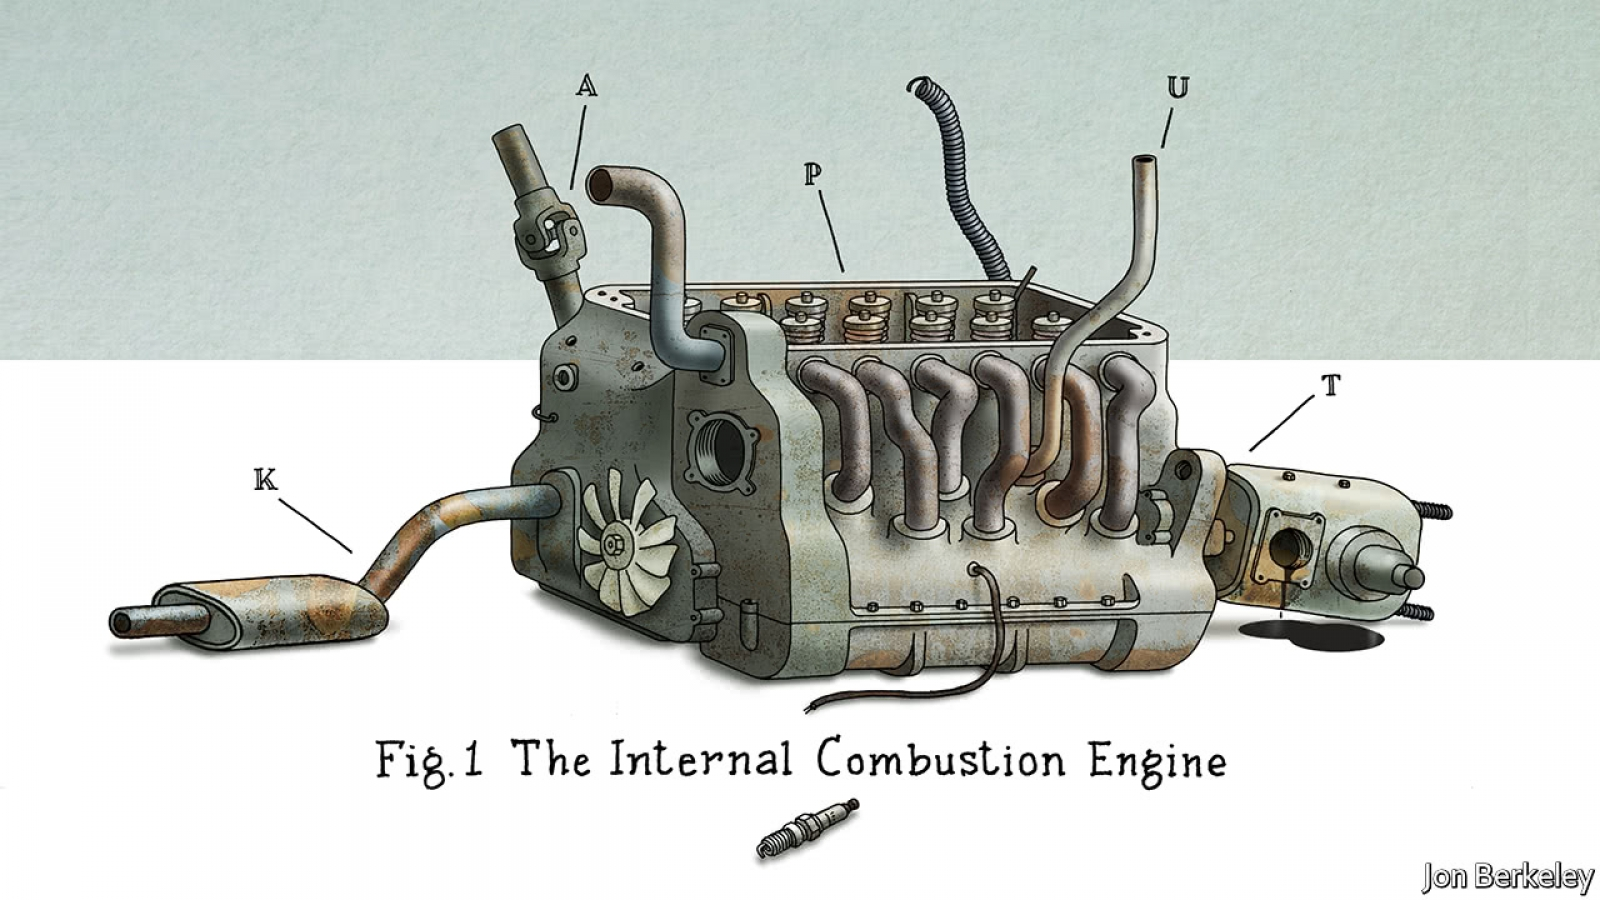 a report on the internal combustion engine Koylu, u, development of teaching material to integrate gt-power into  combustion courses for ic engine simulations, technical report nutc r200 ( centre.